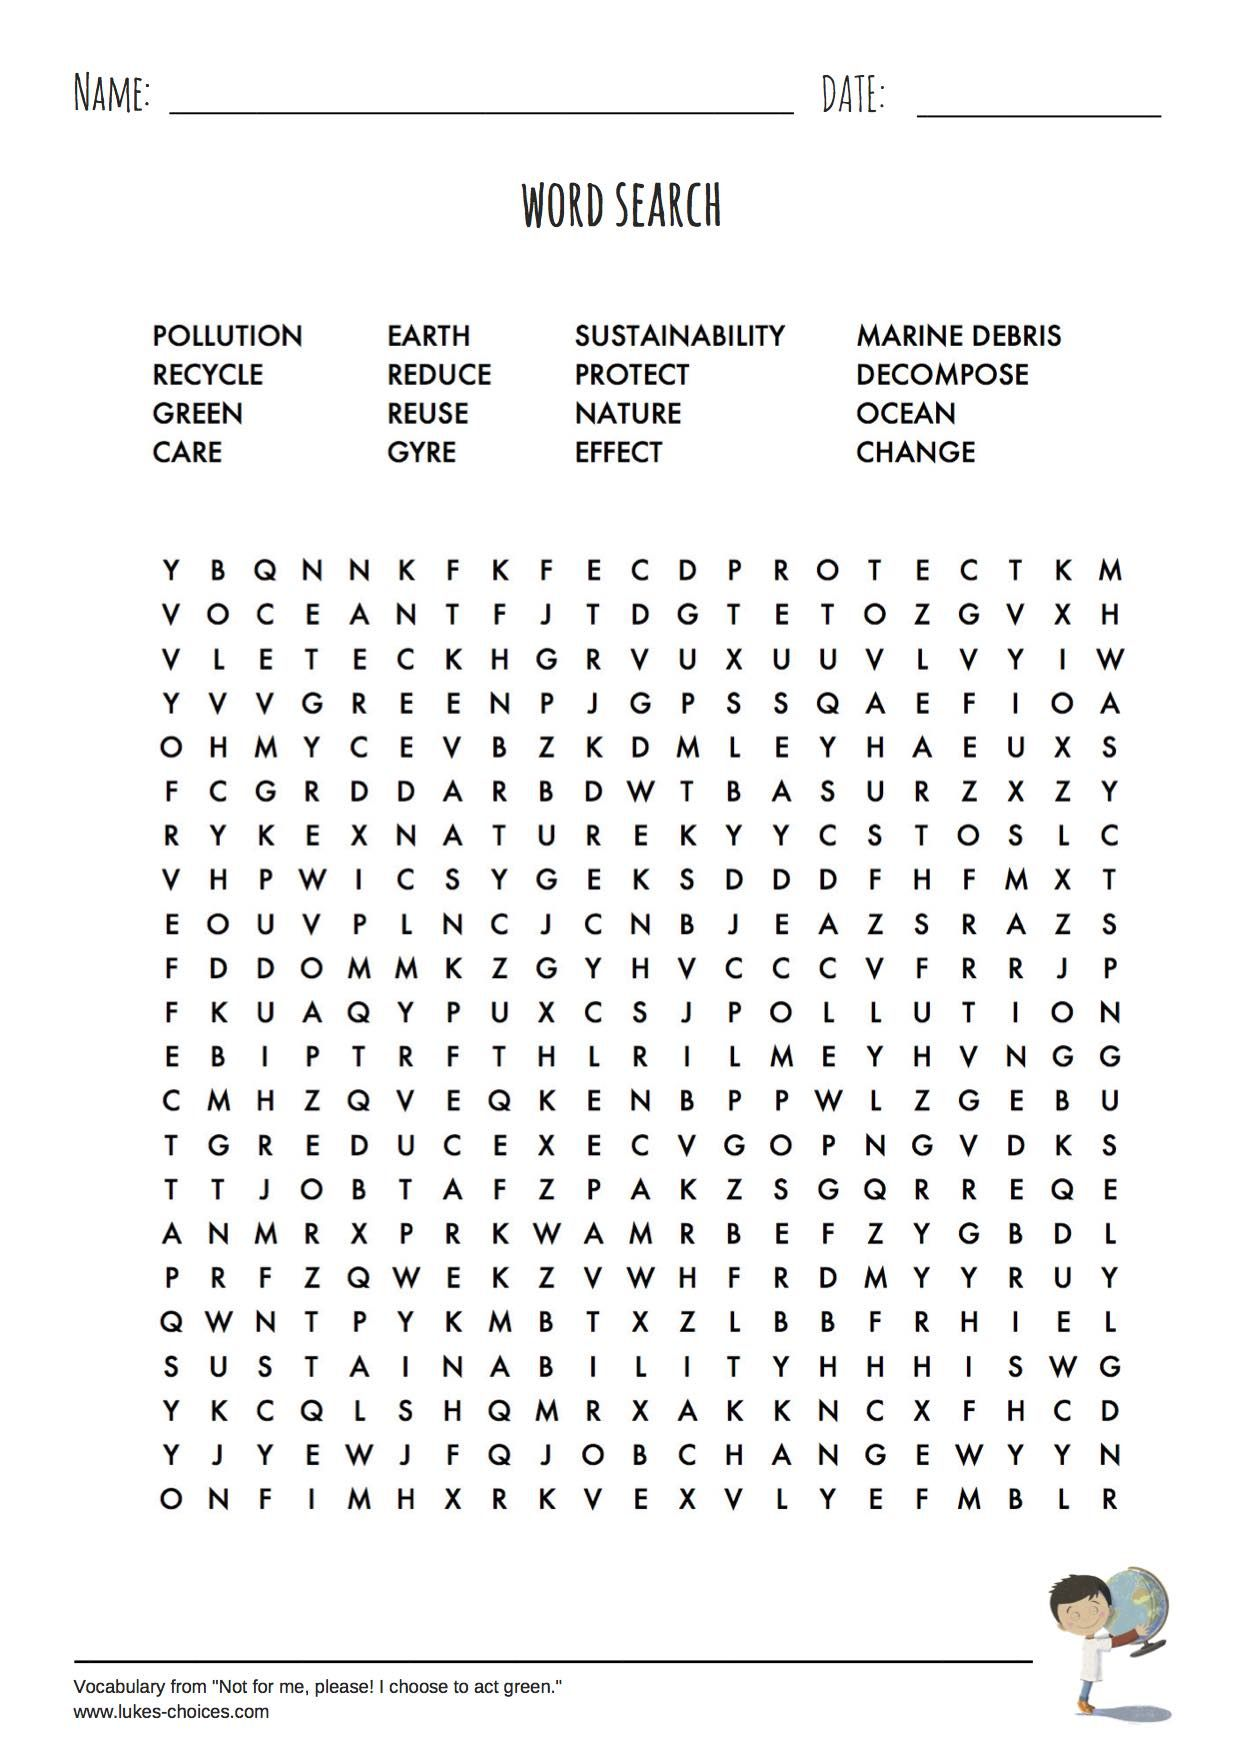 Word Search Worksheet Complementing Our Children S Picture Book Not For Me Please I Choose To